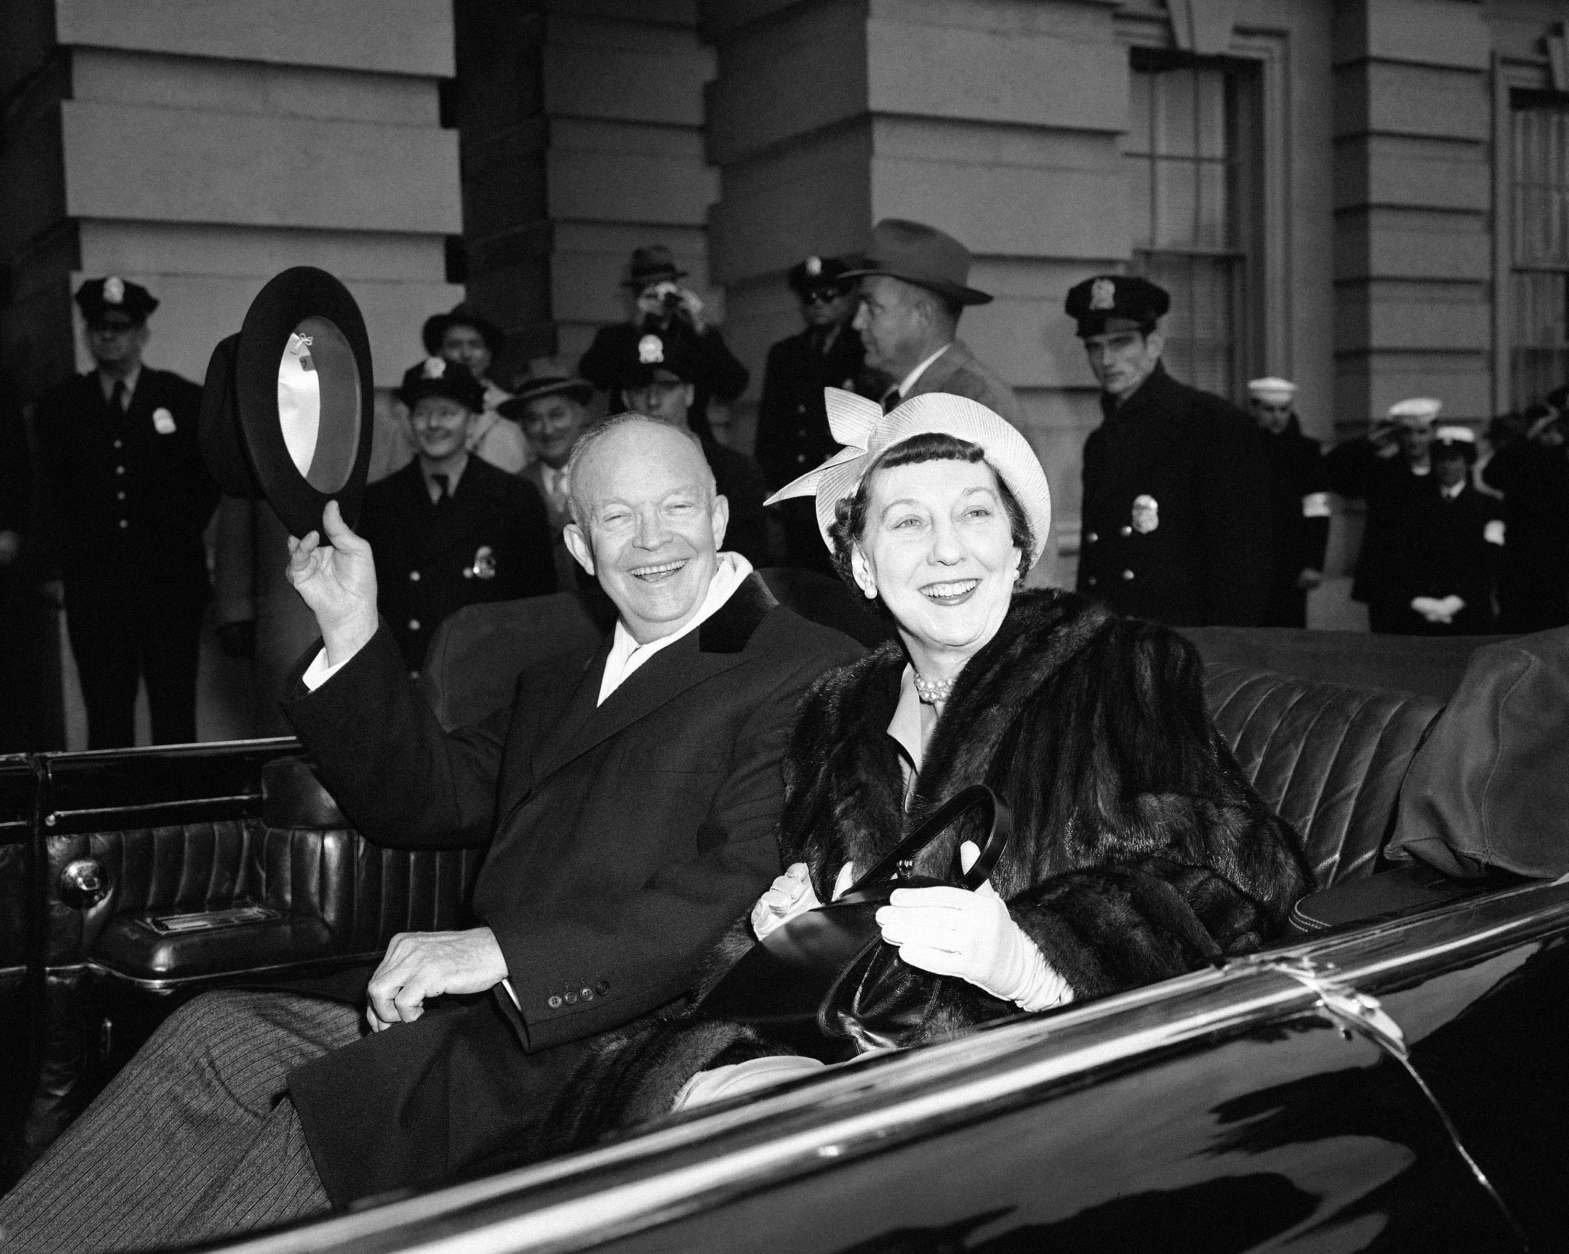 President Dwight Eisenhower and Mrs Mamie Eisenhower sit  in the open car and wave as they  leave the Capitol in Washington Jan. 21, 1957, just before swinging into Constitution Avenue on traditional inaugural parade route. (AP Photo)